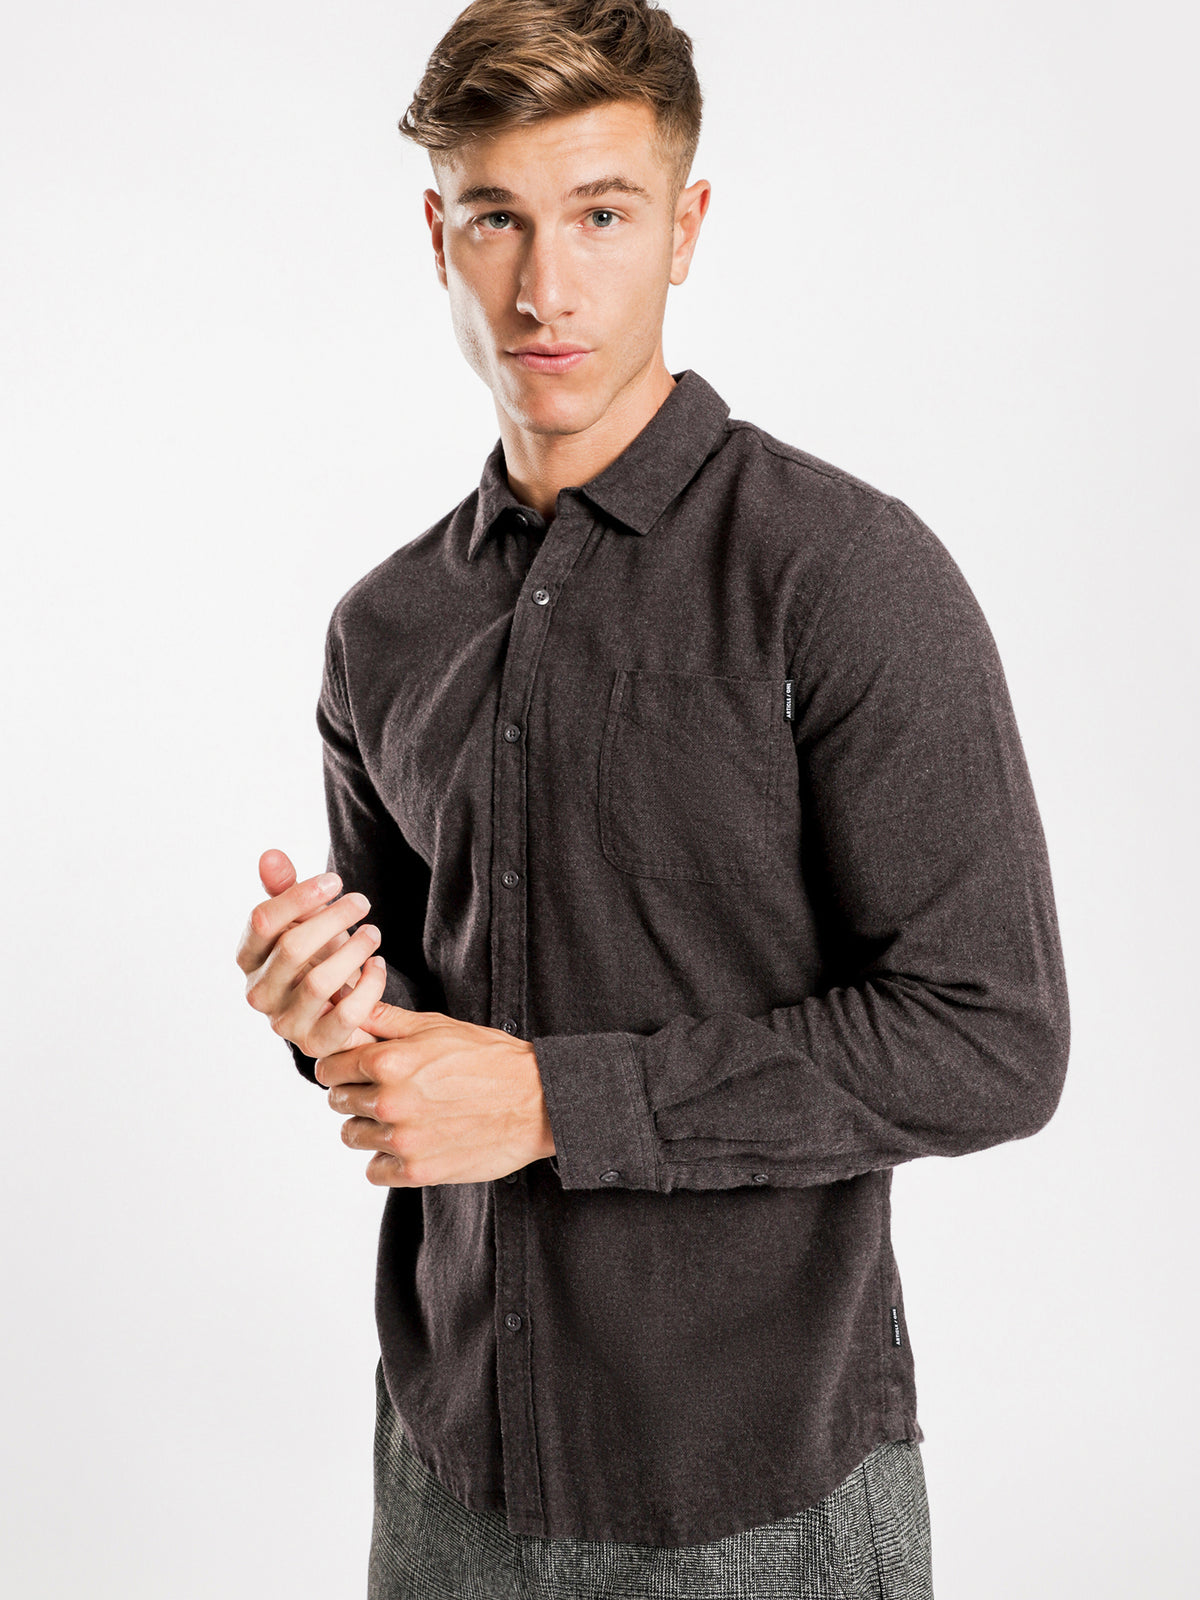 Ryker Flannel Long Sleeve Shirt in Charcoal